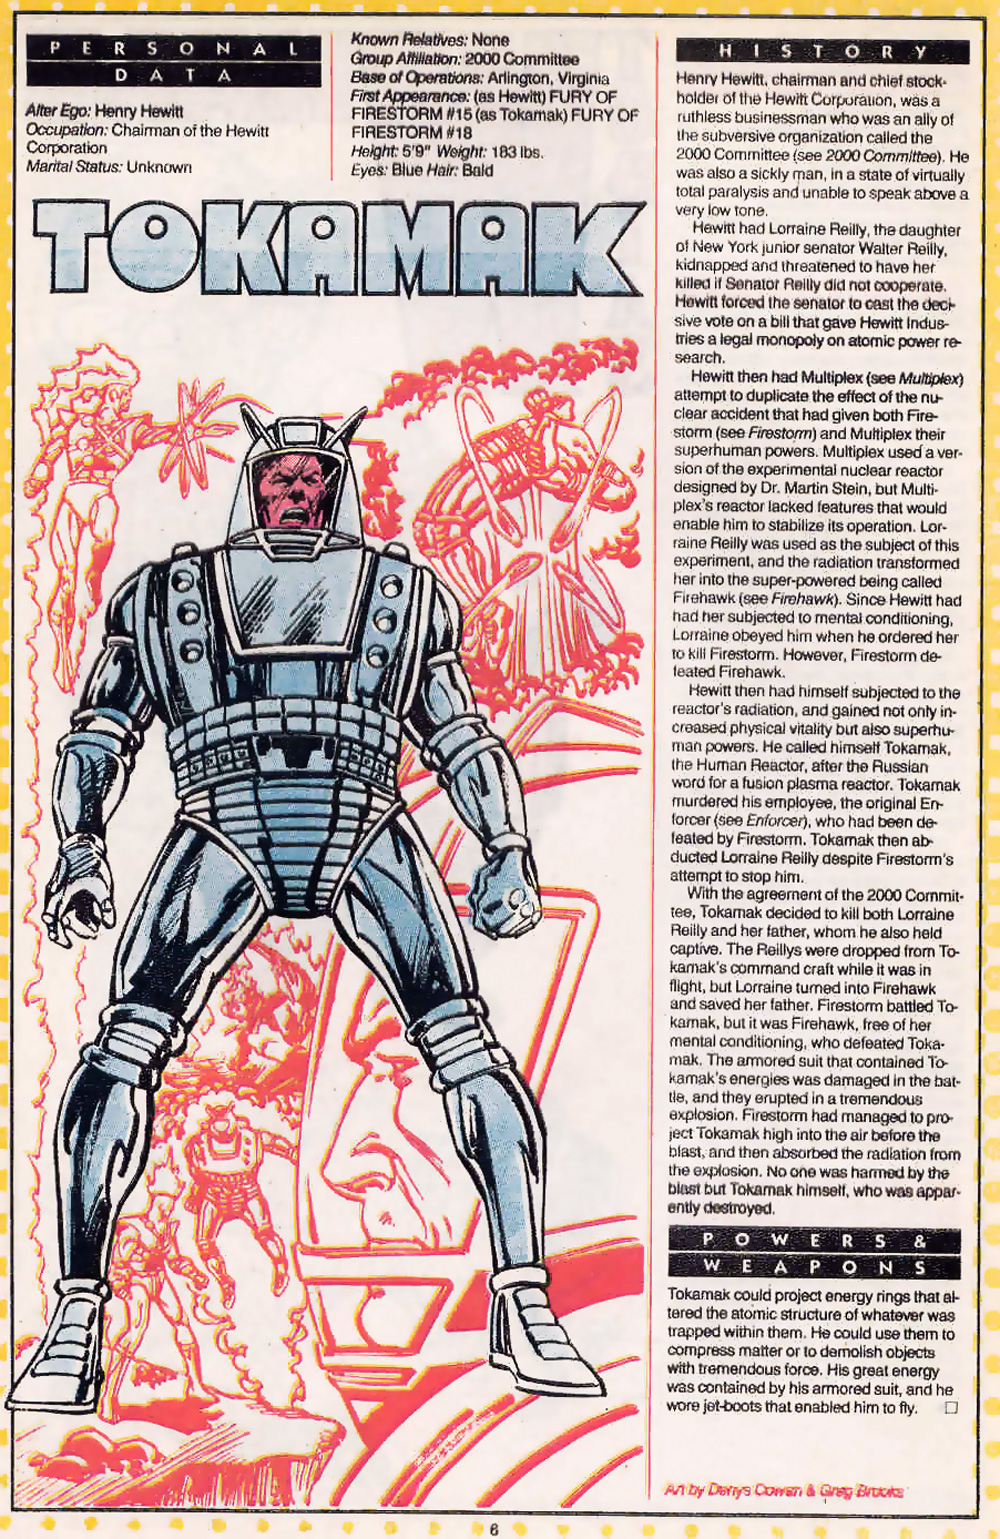 Tokamak drawn by Denys Cowan and Greg Brooks